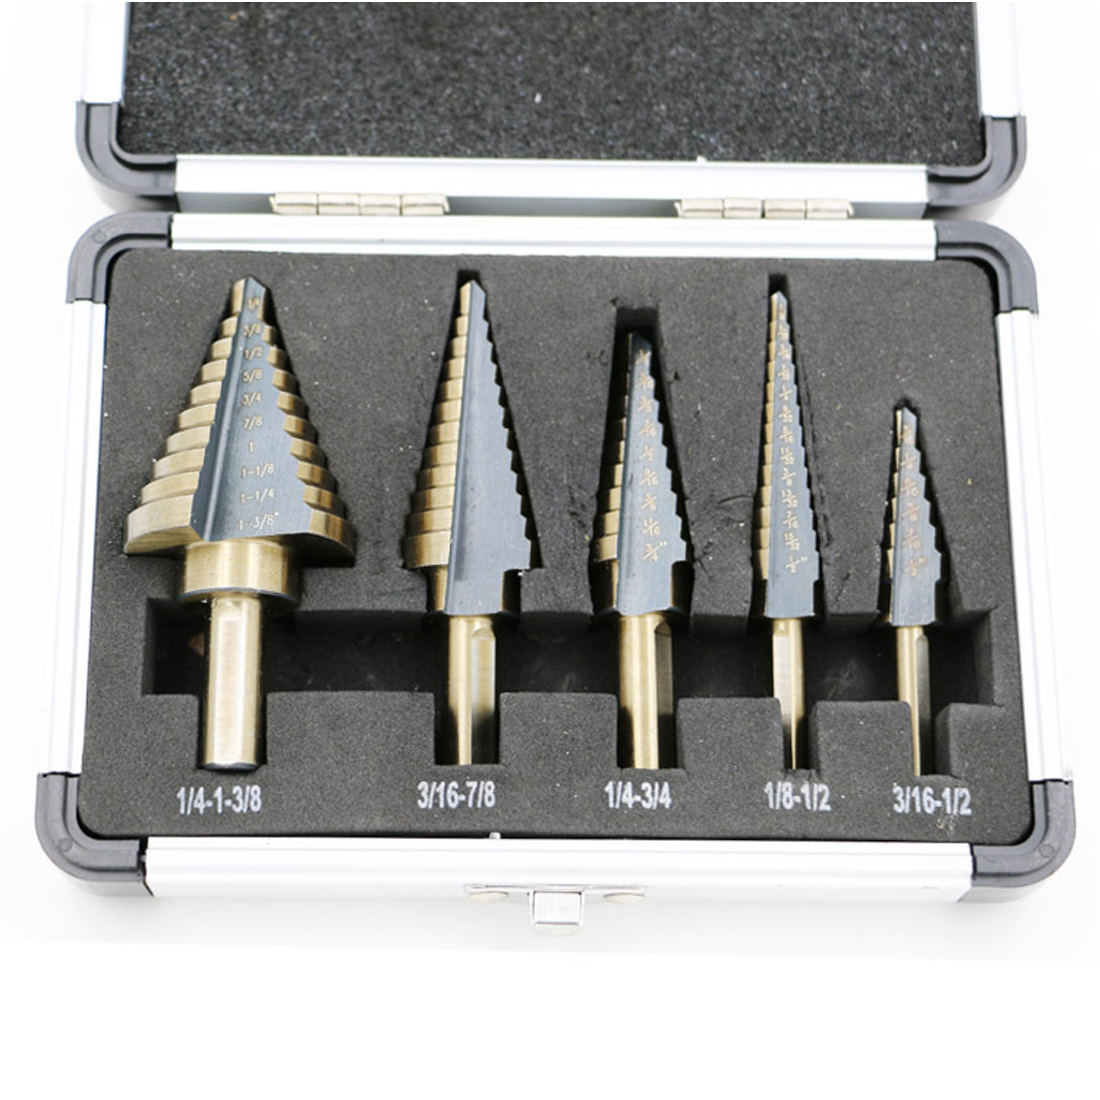 Drill Bit Set 5pcs Hss Cobalt Multiple Hole 50 Sizes Step Drills 1/4-1-3/8 3/16-7/8 1/4-3/4 1/8-1/2 3/16-1/2 Drill Bits pegasi high quality 5pcs 50 sizes hss